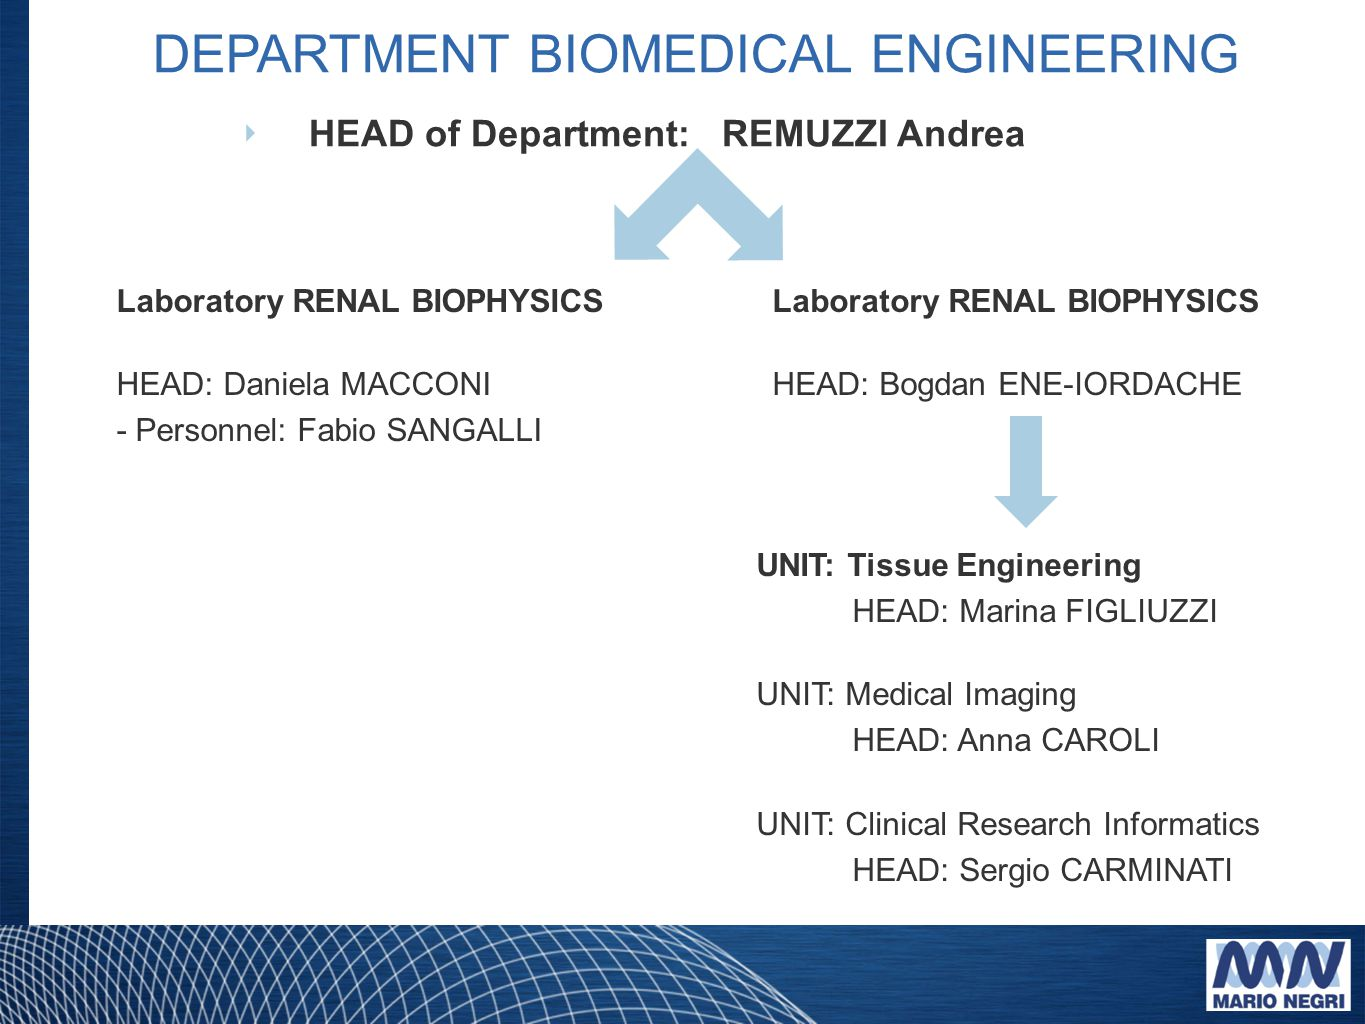 DEPARTMENT BIOMEDICAL ENGINEERING ‣ HEAD of Department: REMUZZI Andrea Laboratory RENAL BIOPHYSICS HEAD: Daniela MACCONI - Personnel: Fabio SANGALLI Laboratory RENAL BIOPHYSICS HEAD: Bogdan ENE-IORDACHE UNIT: Tissue Engineering HEAD: Marina FIGLIUZZI UNIT: Medical Imaging HEAD: Anna CAROLI UNIT: Clinical Research Informatics HEAD: Sergio CARMINATI